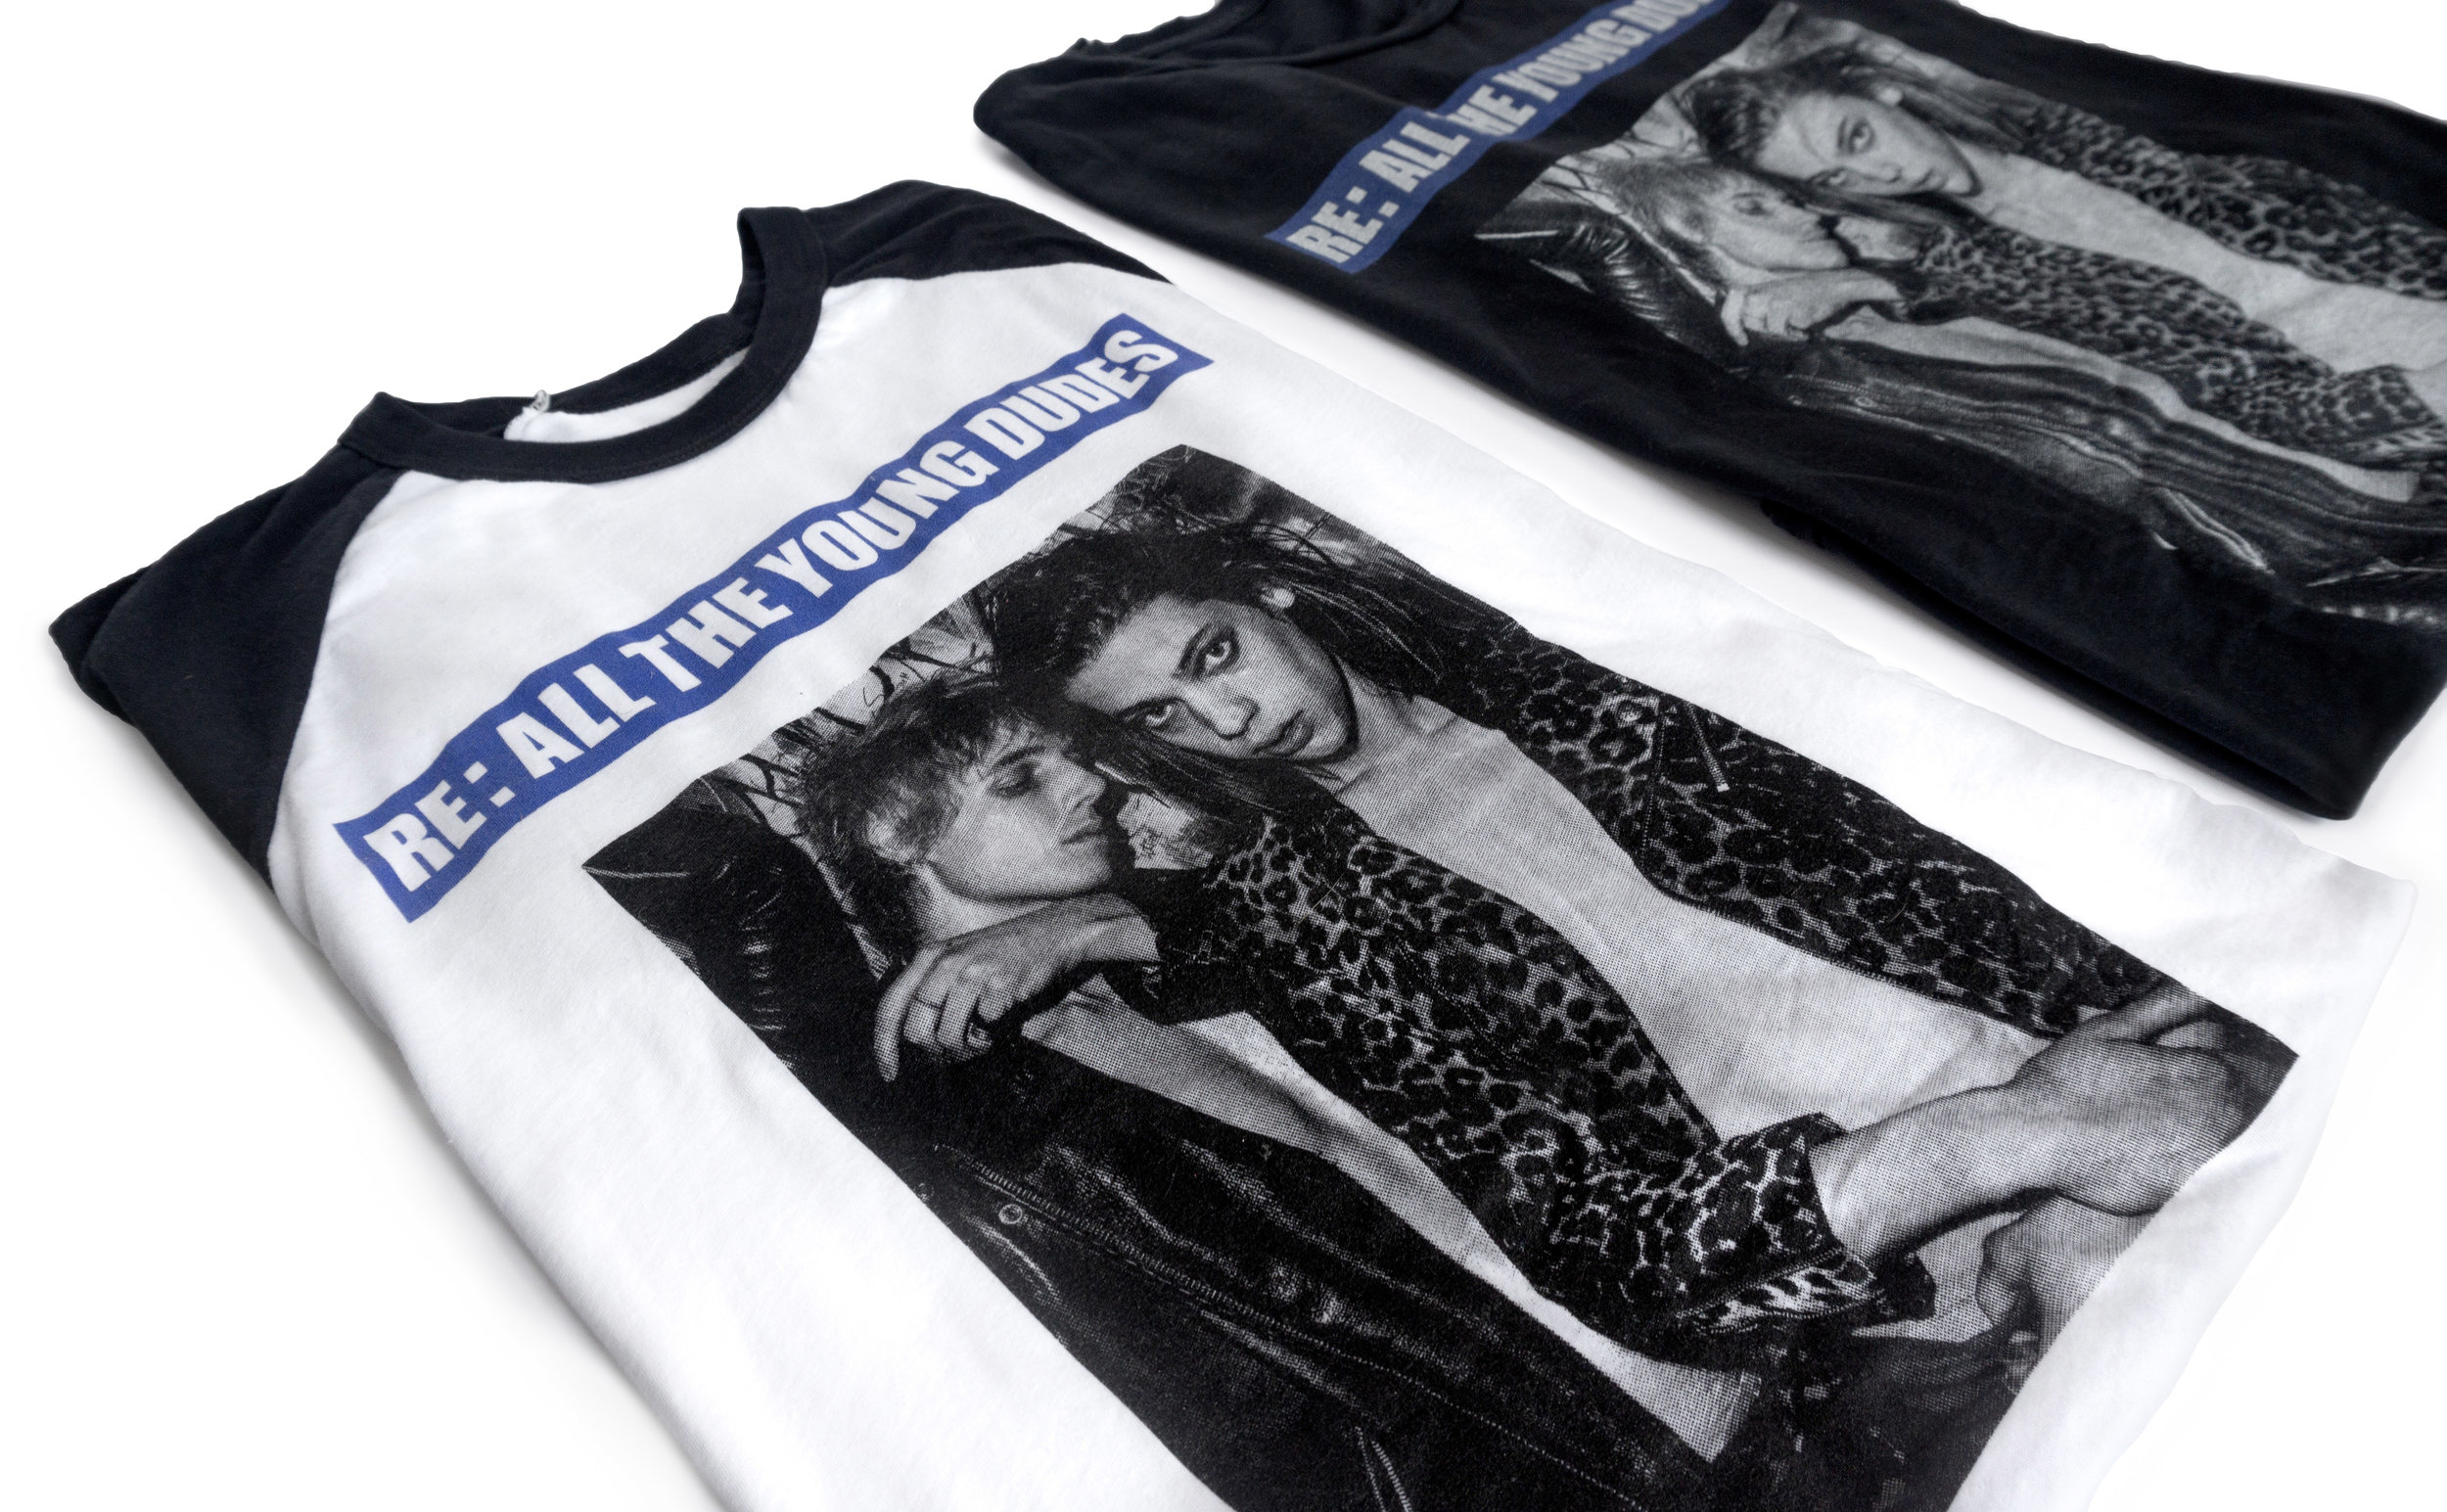 All-The-Young-Dudes-Shirts-2.jpg